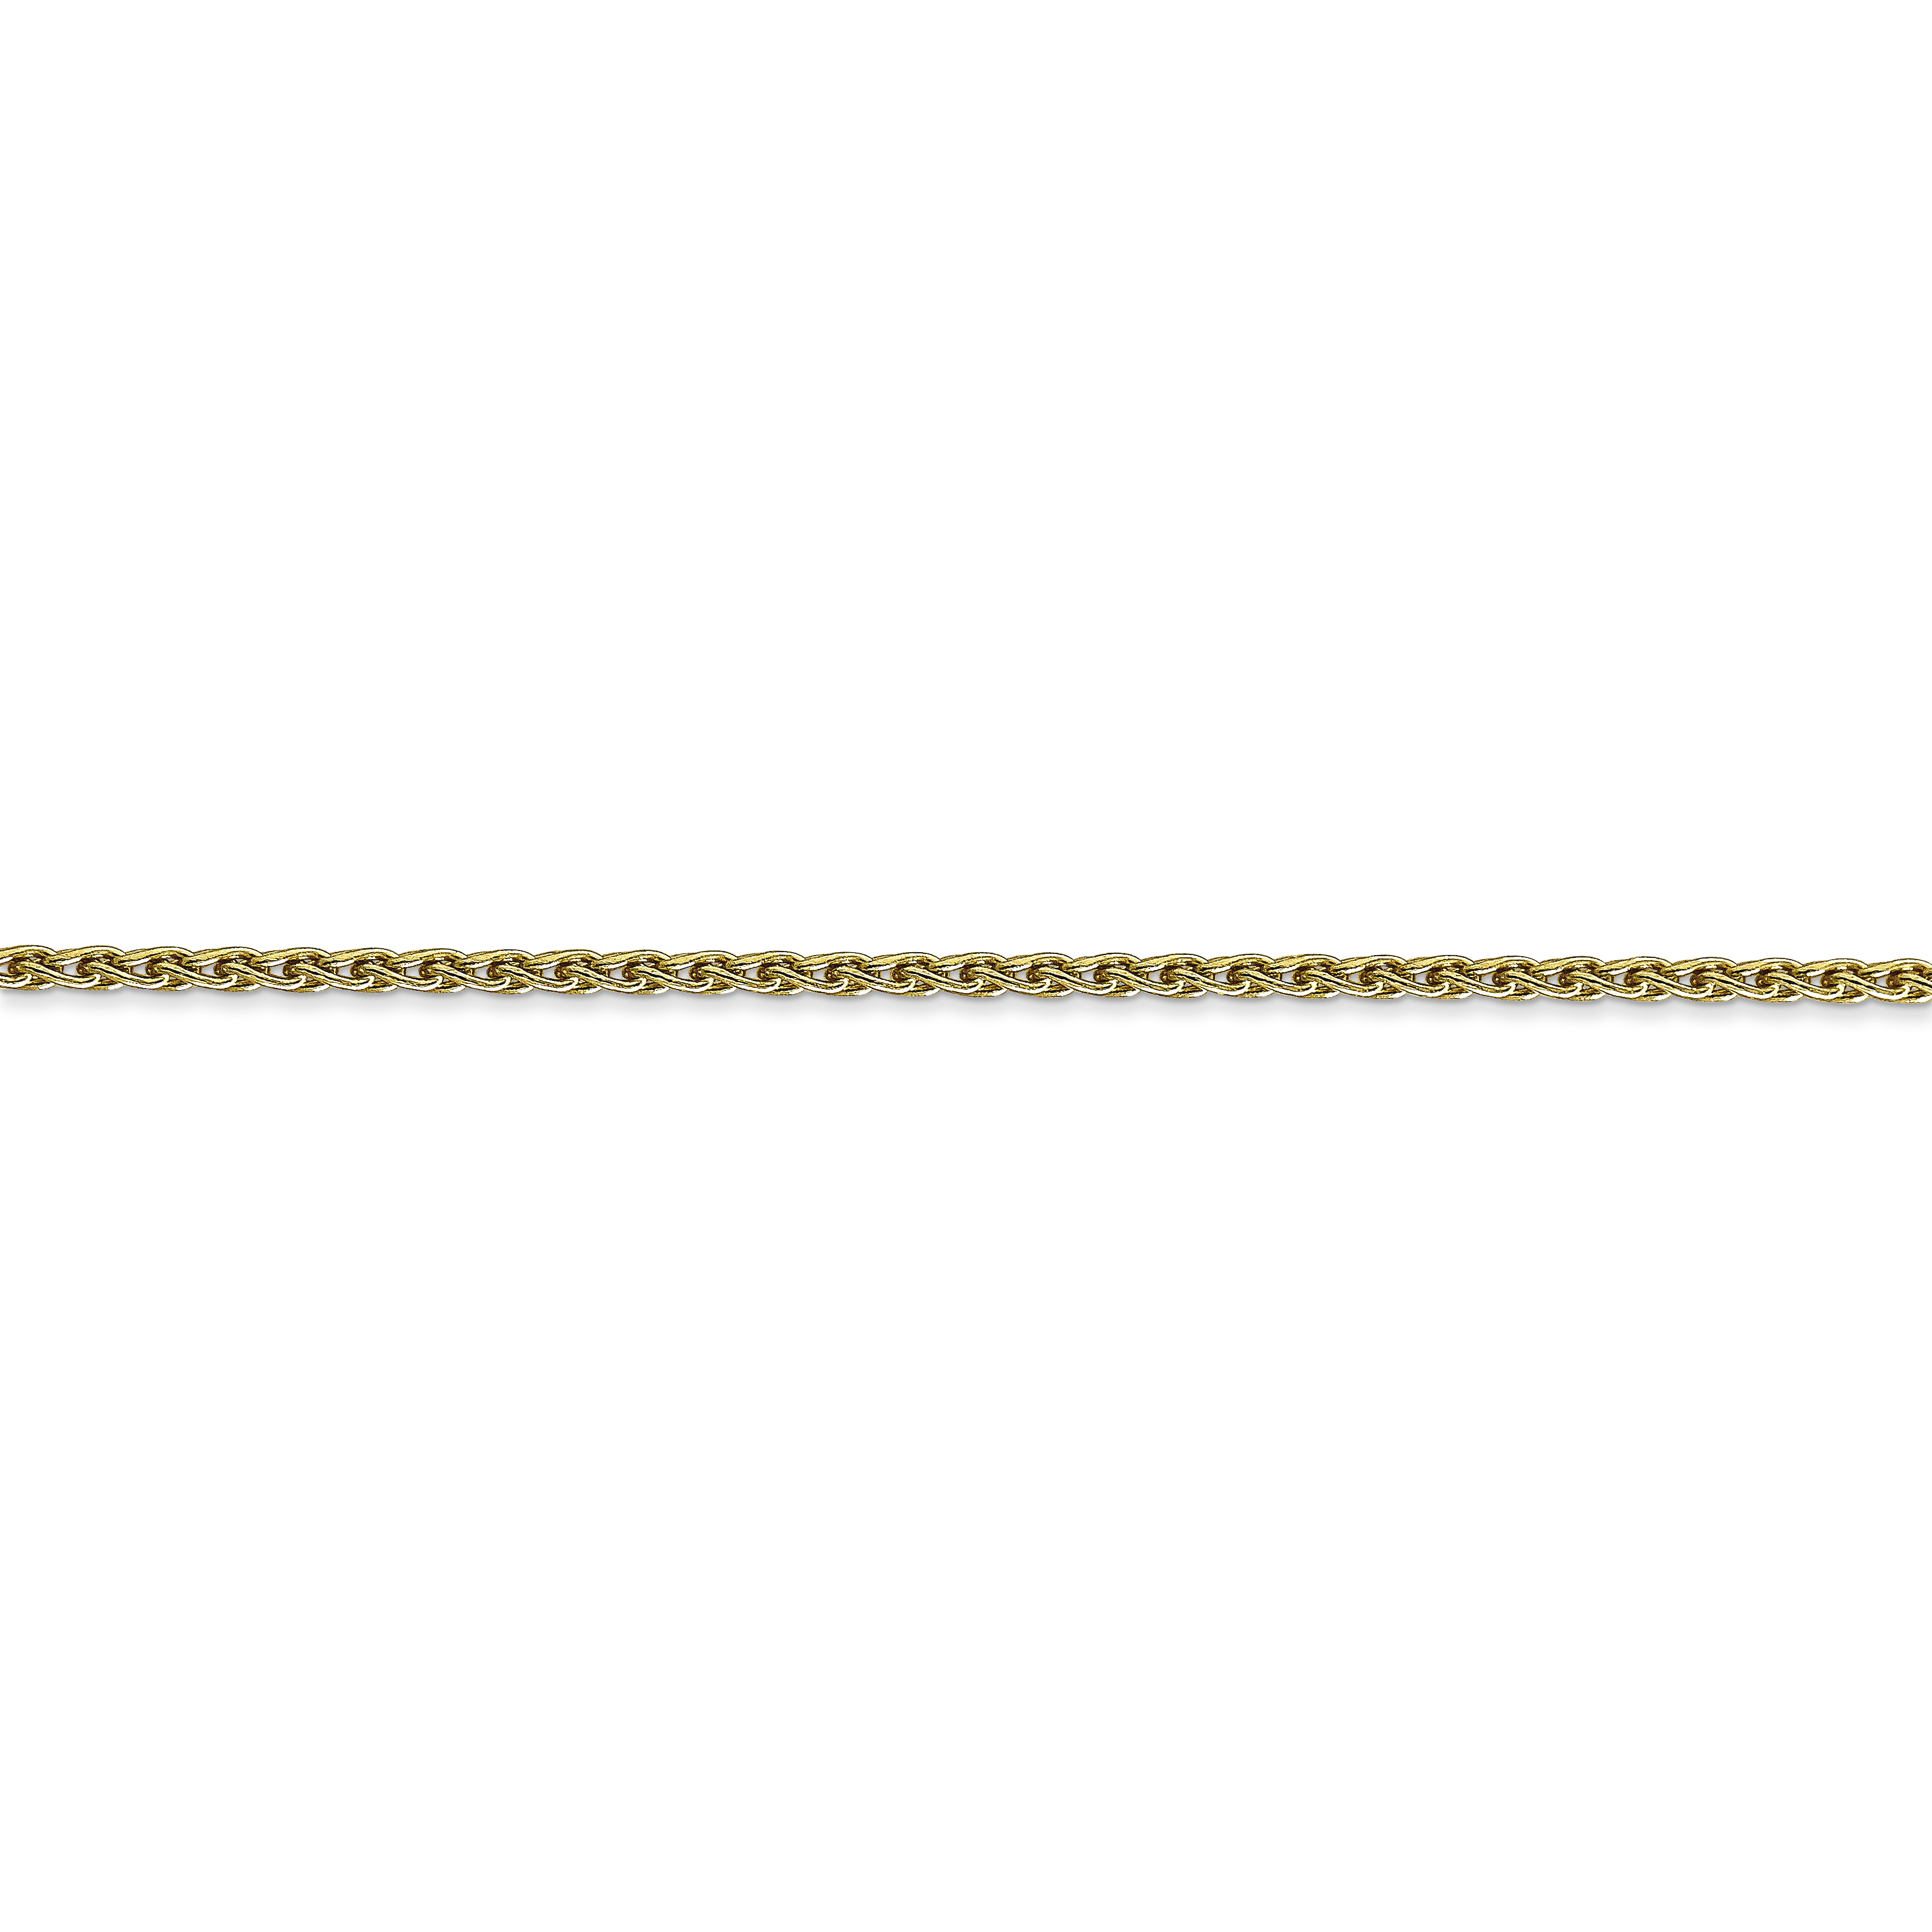 10k Yellow Gold 1.75mm Parisian Link Wheat Necklace Chain Pendant Charm Spiga Fine Jewelry Gifts For Women For Her - image 1 de 4